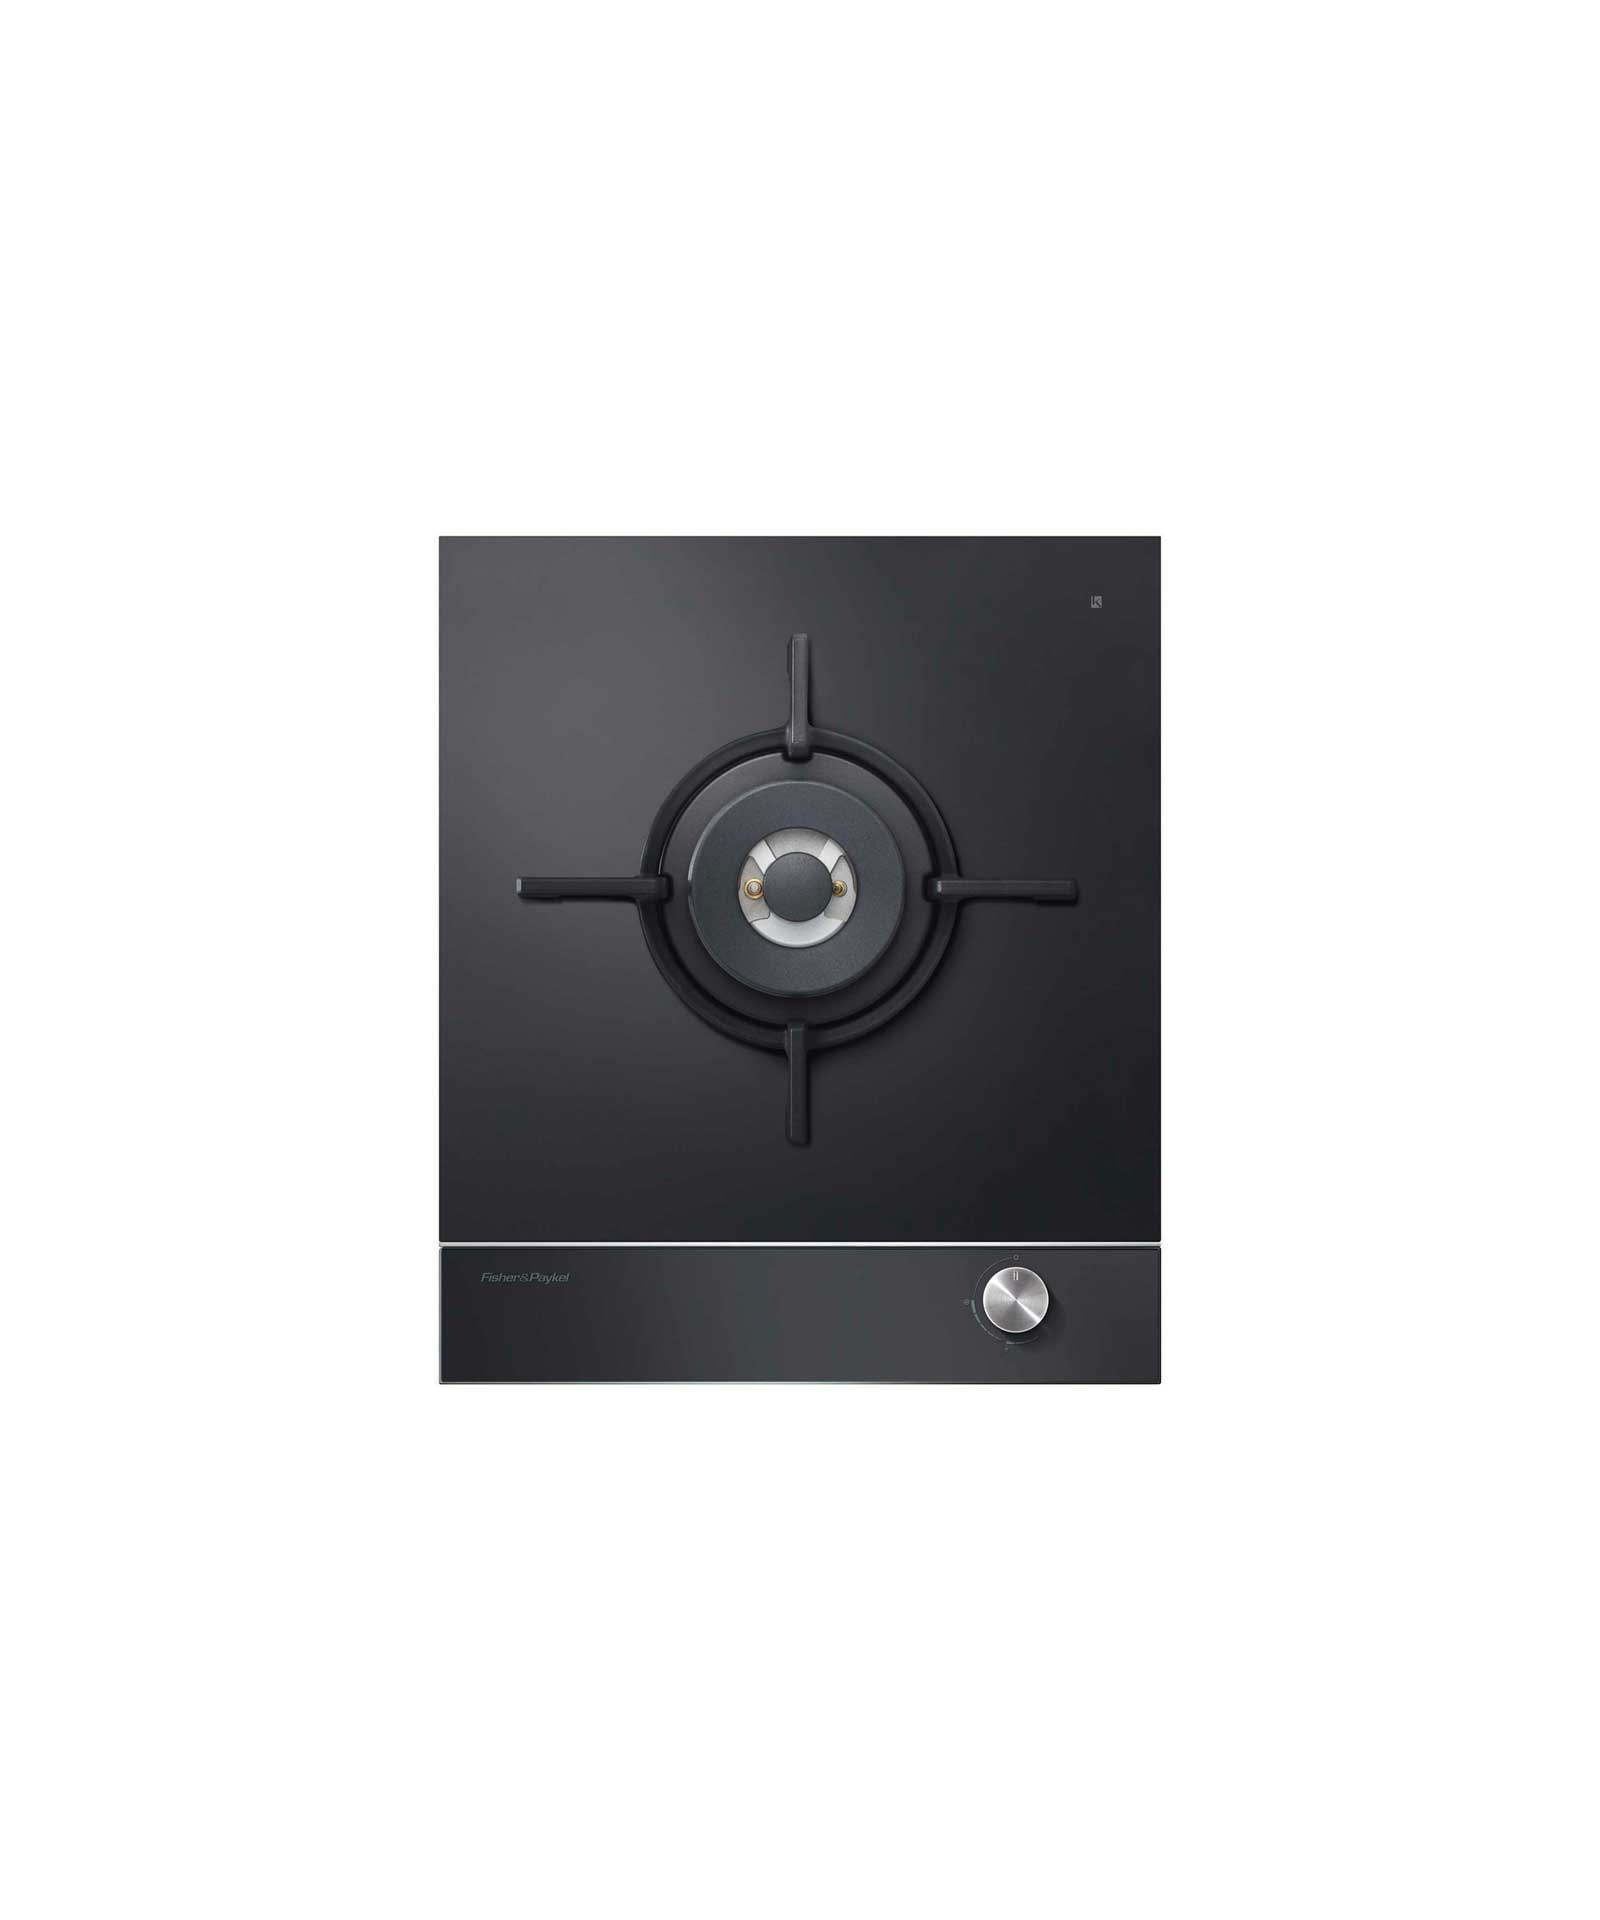 Fisher & Paykel 45cm Gas on Glass Cooktop